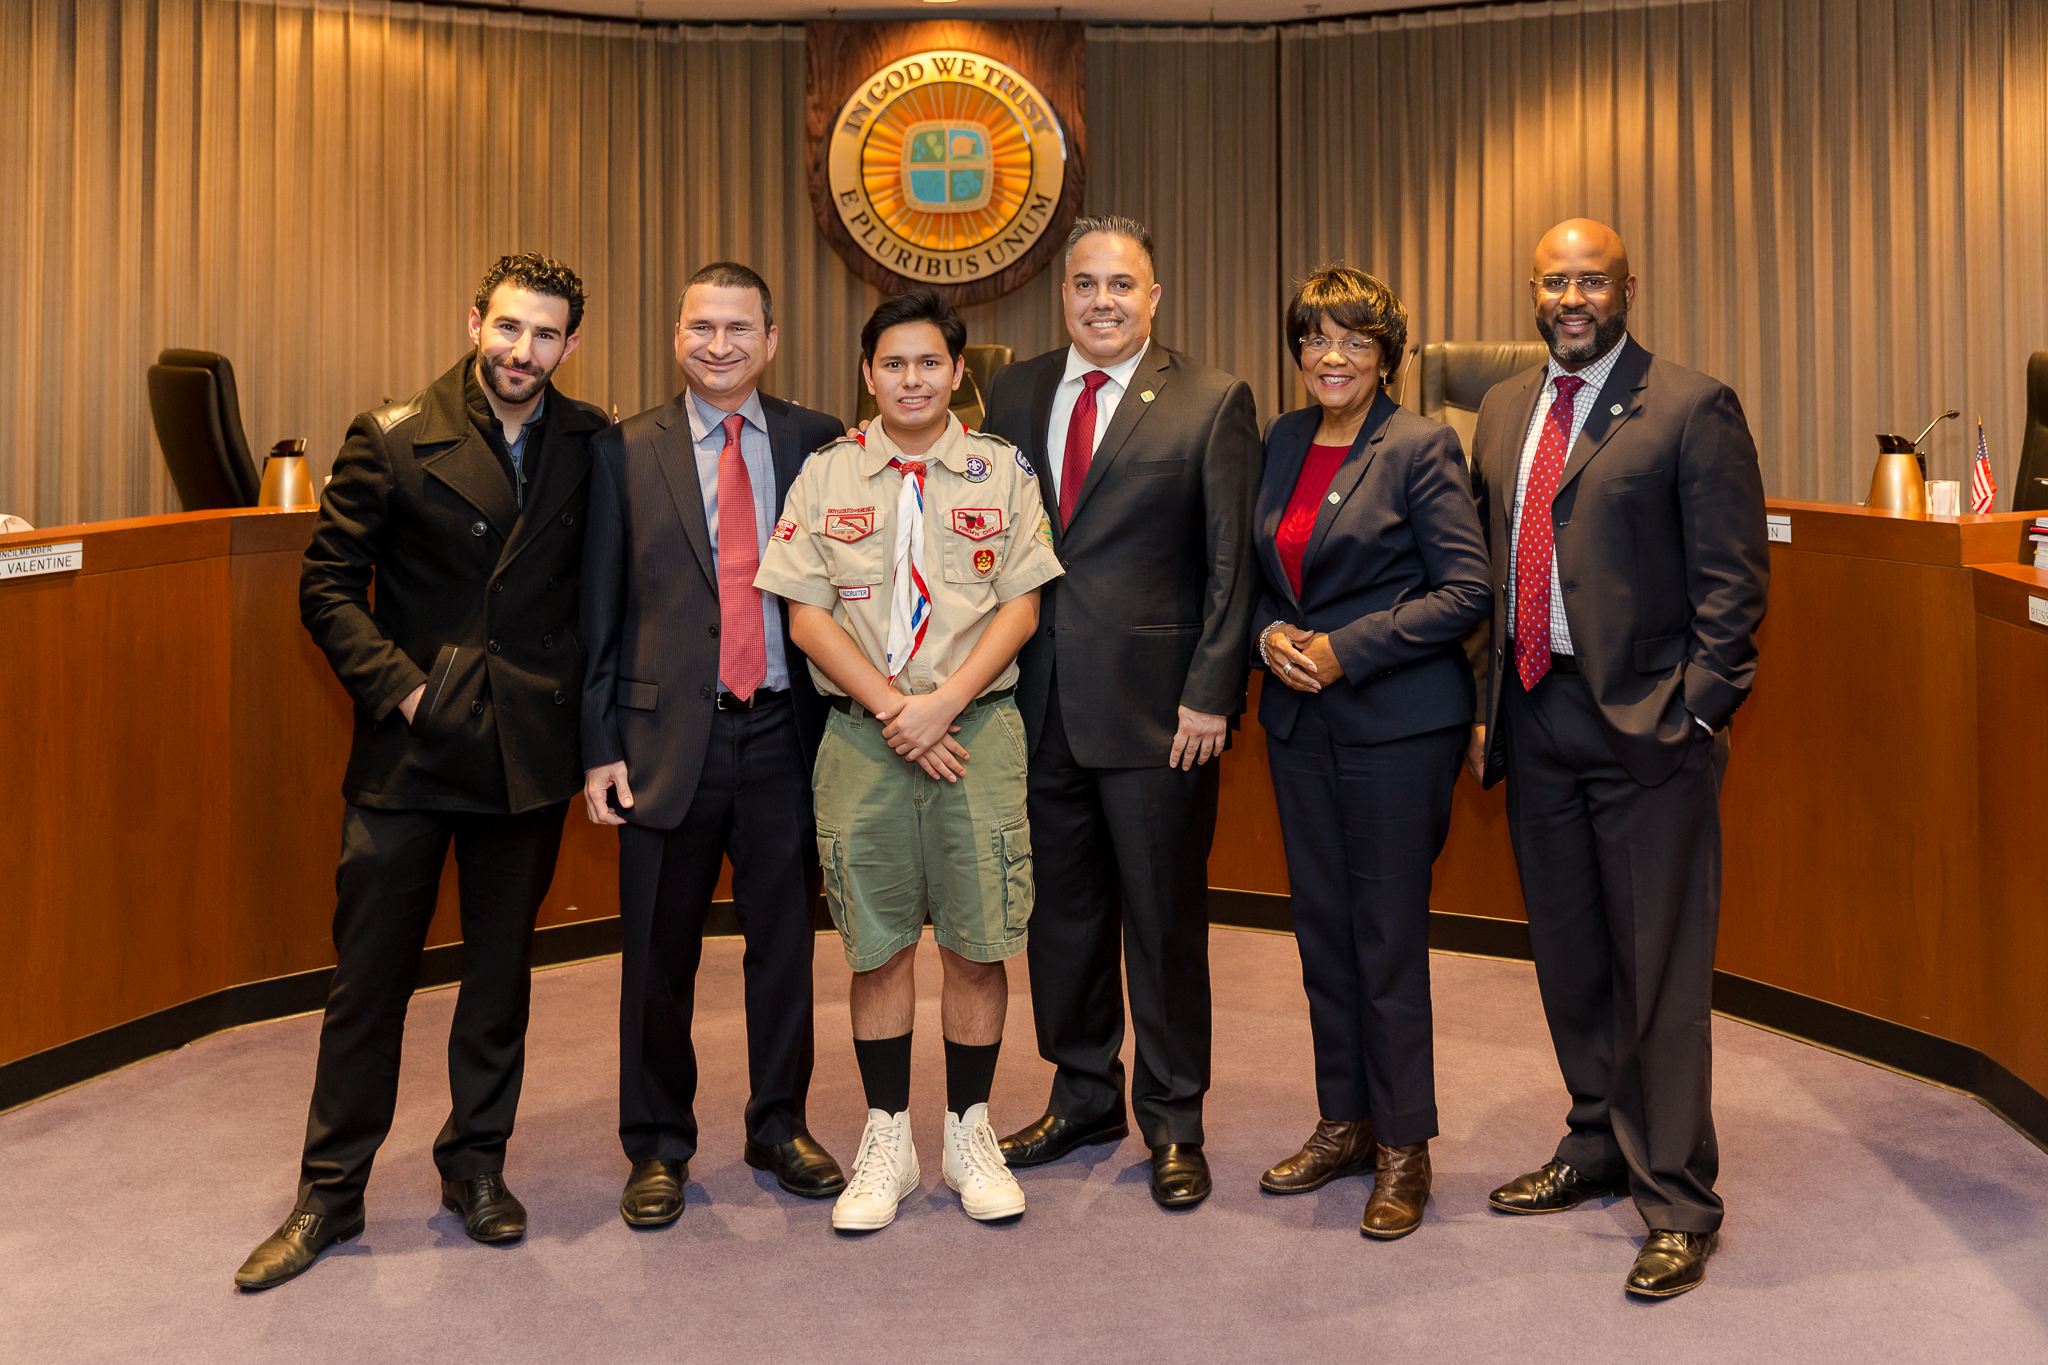 Eagle Scout David Salcedo and council